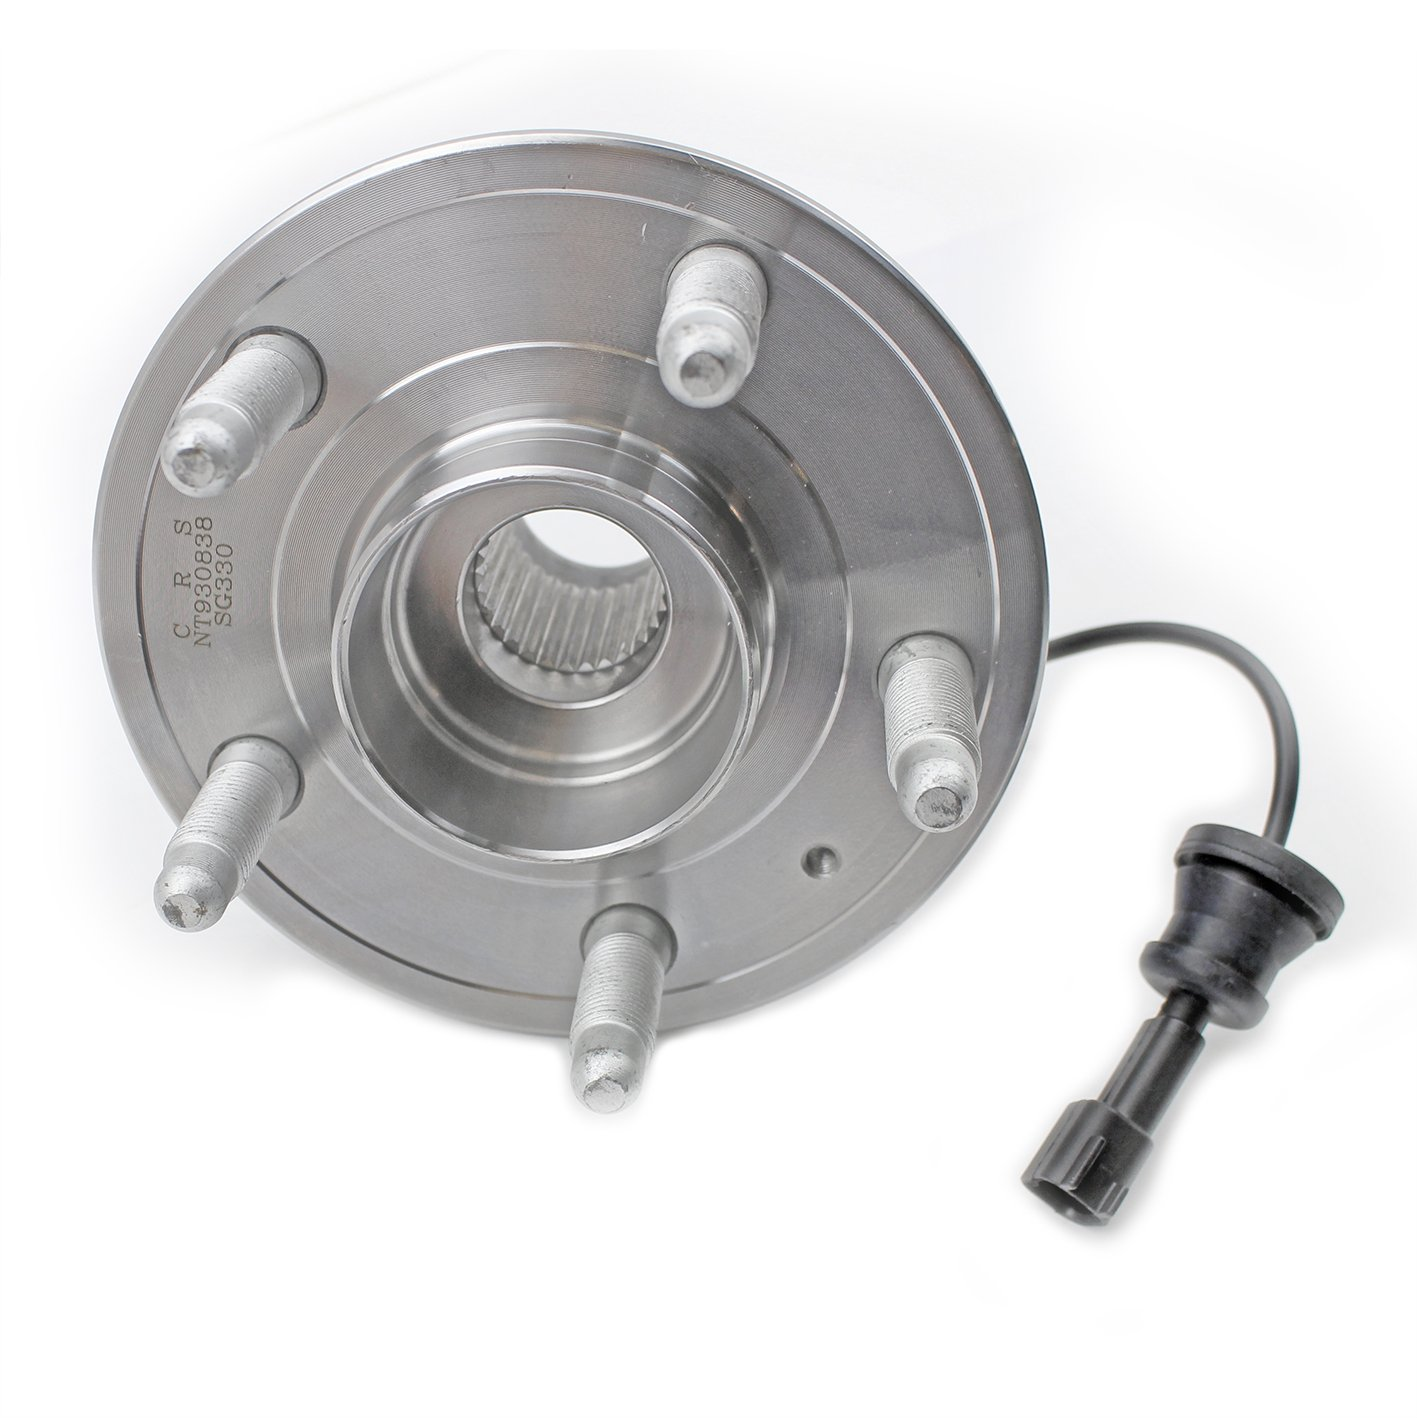 CRS NT930838 New Wheel Bearing Hub Assembly, Rear Left (Driver)/ Right (Passenger), for 2010-2016 Chevy Equinox, 2010-2016 GMC Terrain, FWD/AWD by CRS (Image #6)